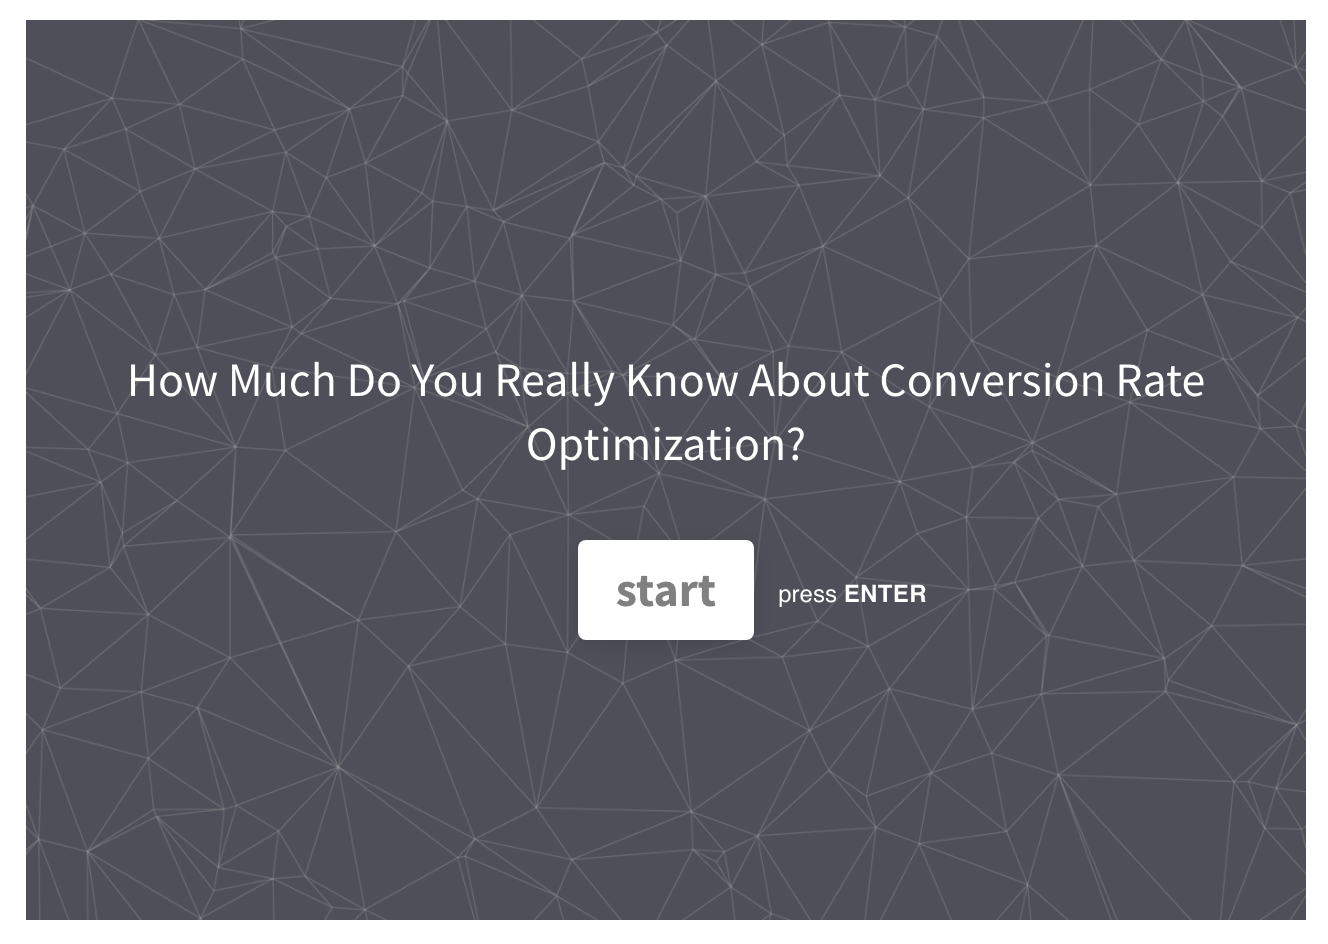 How much do you really know about conversion rate optimization image to attract visitors to click